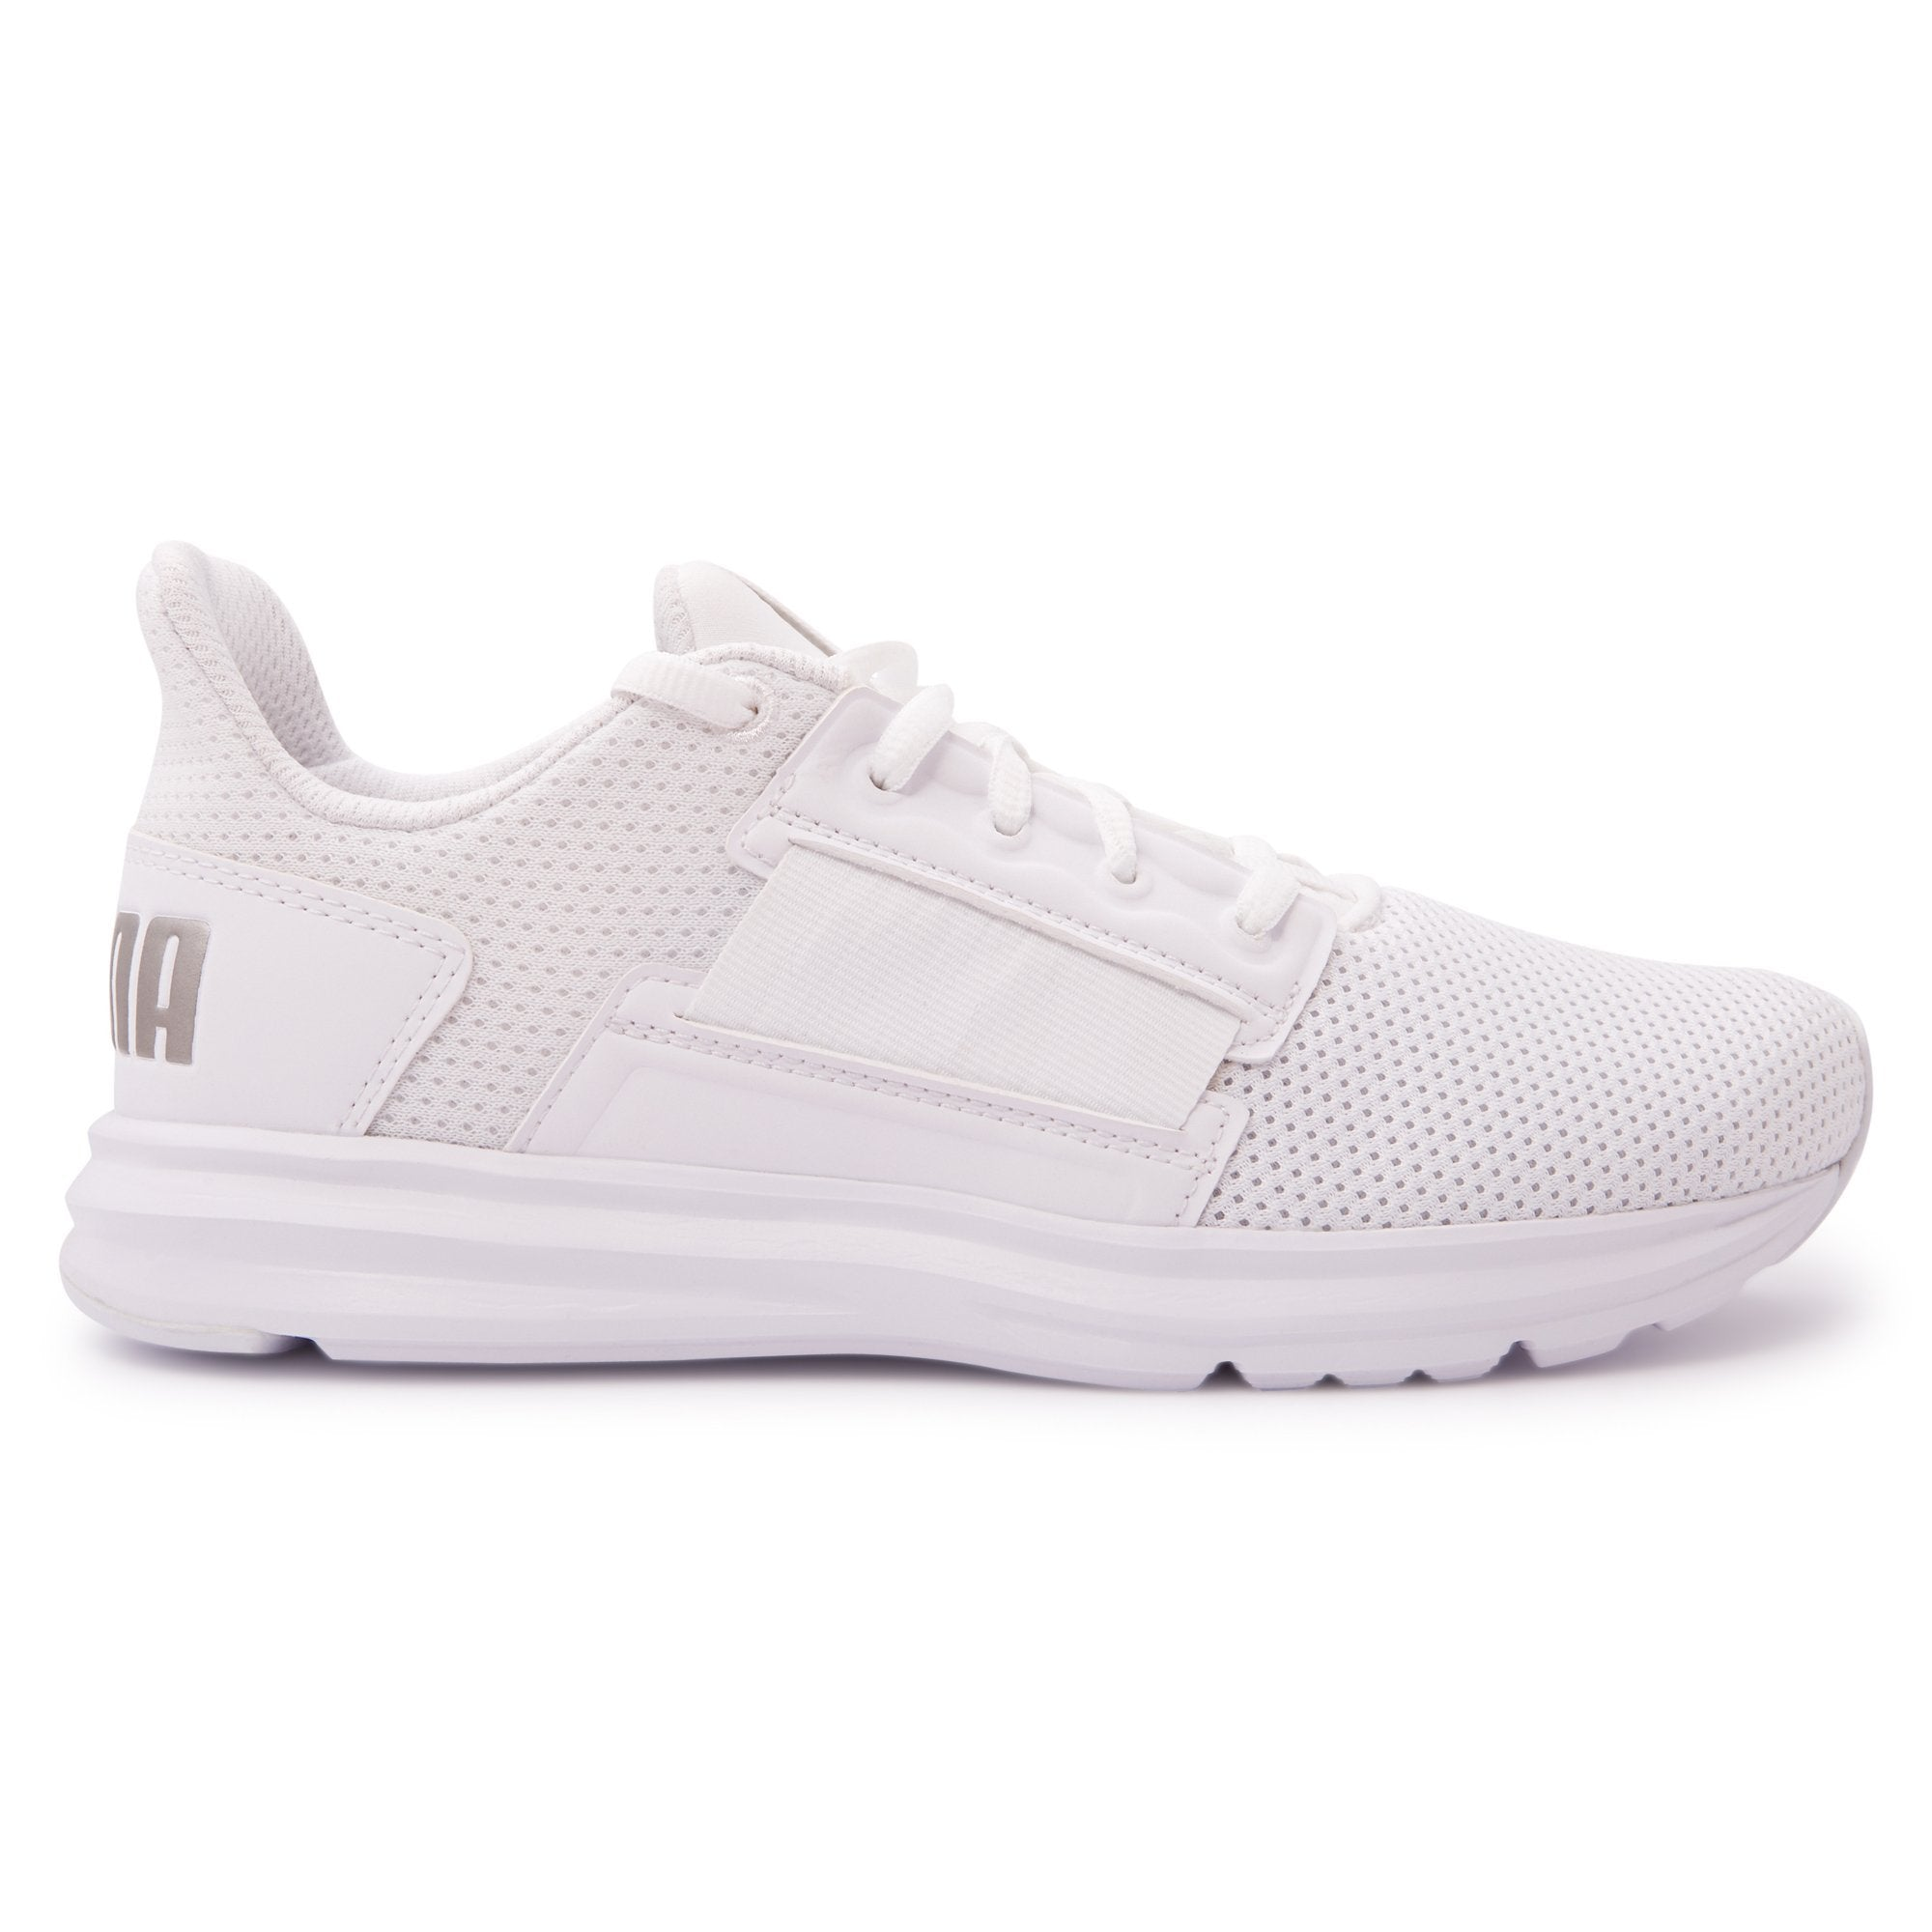 Puma Men's Enzo Street Running Shoes - White Footwear Puma